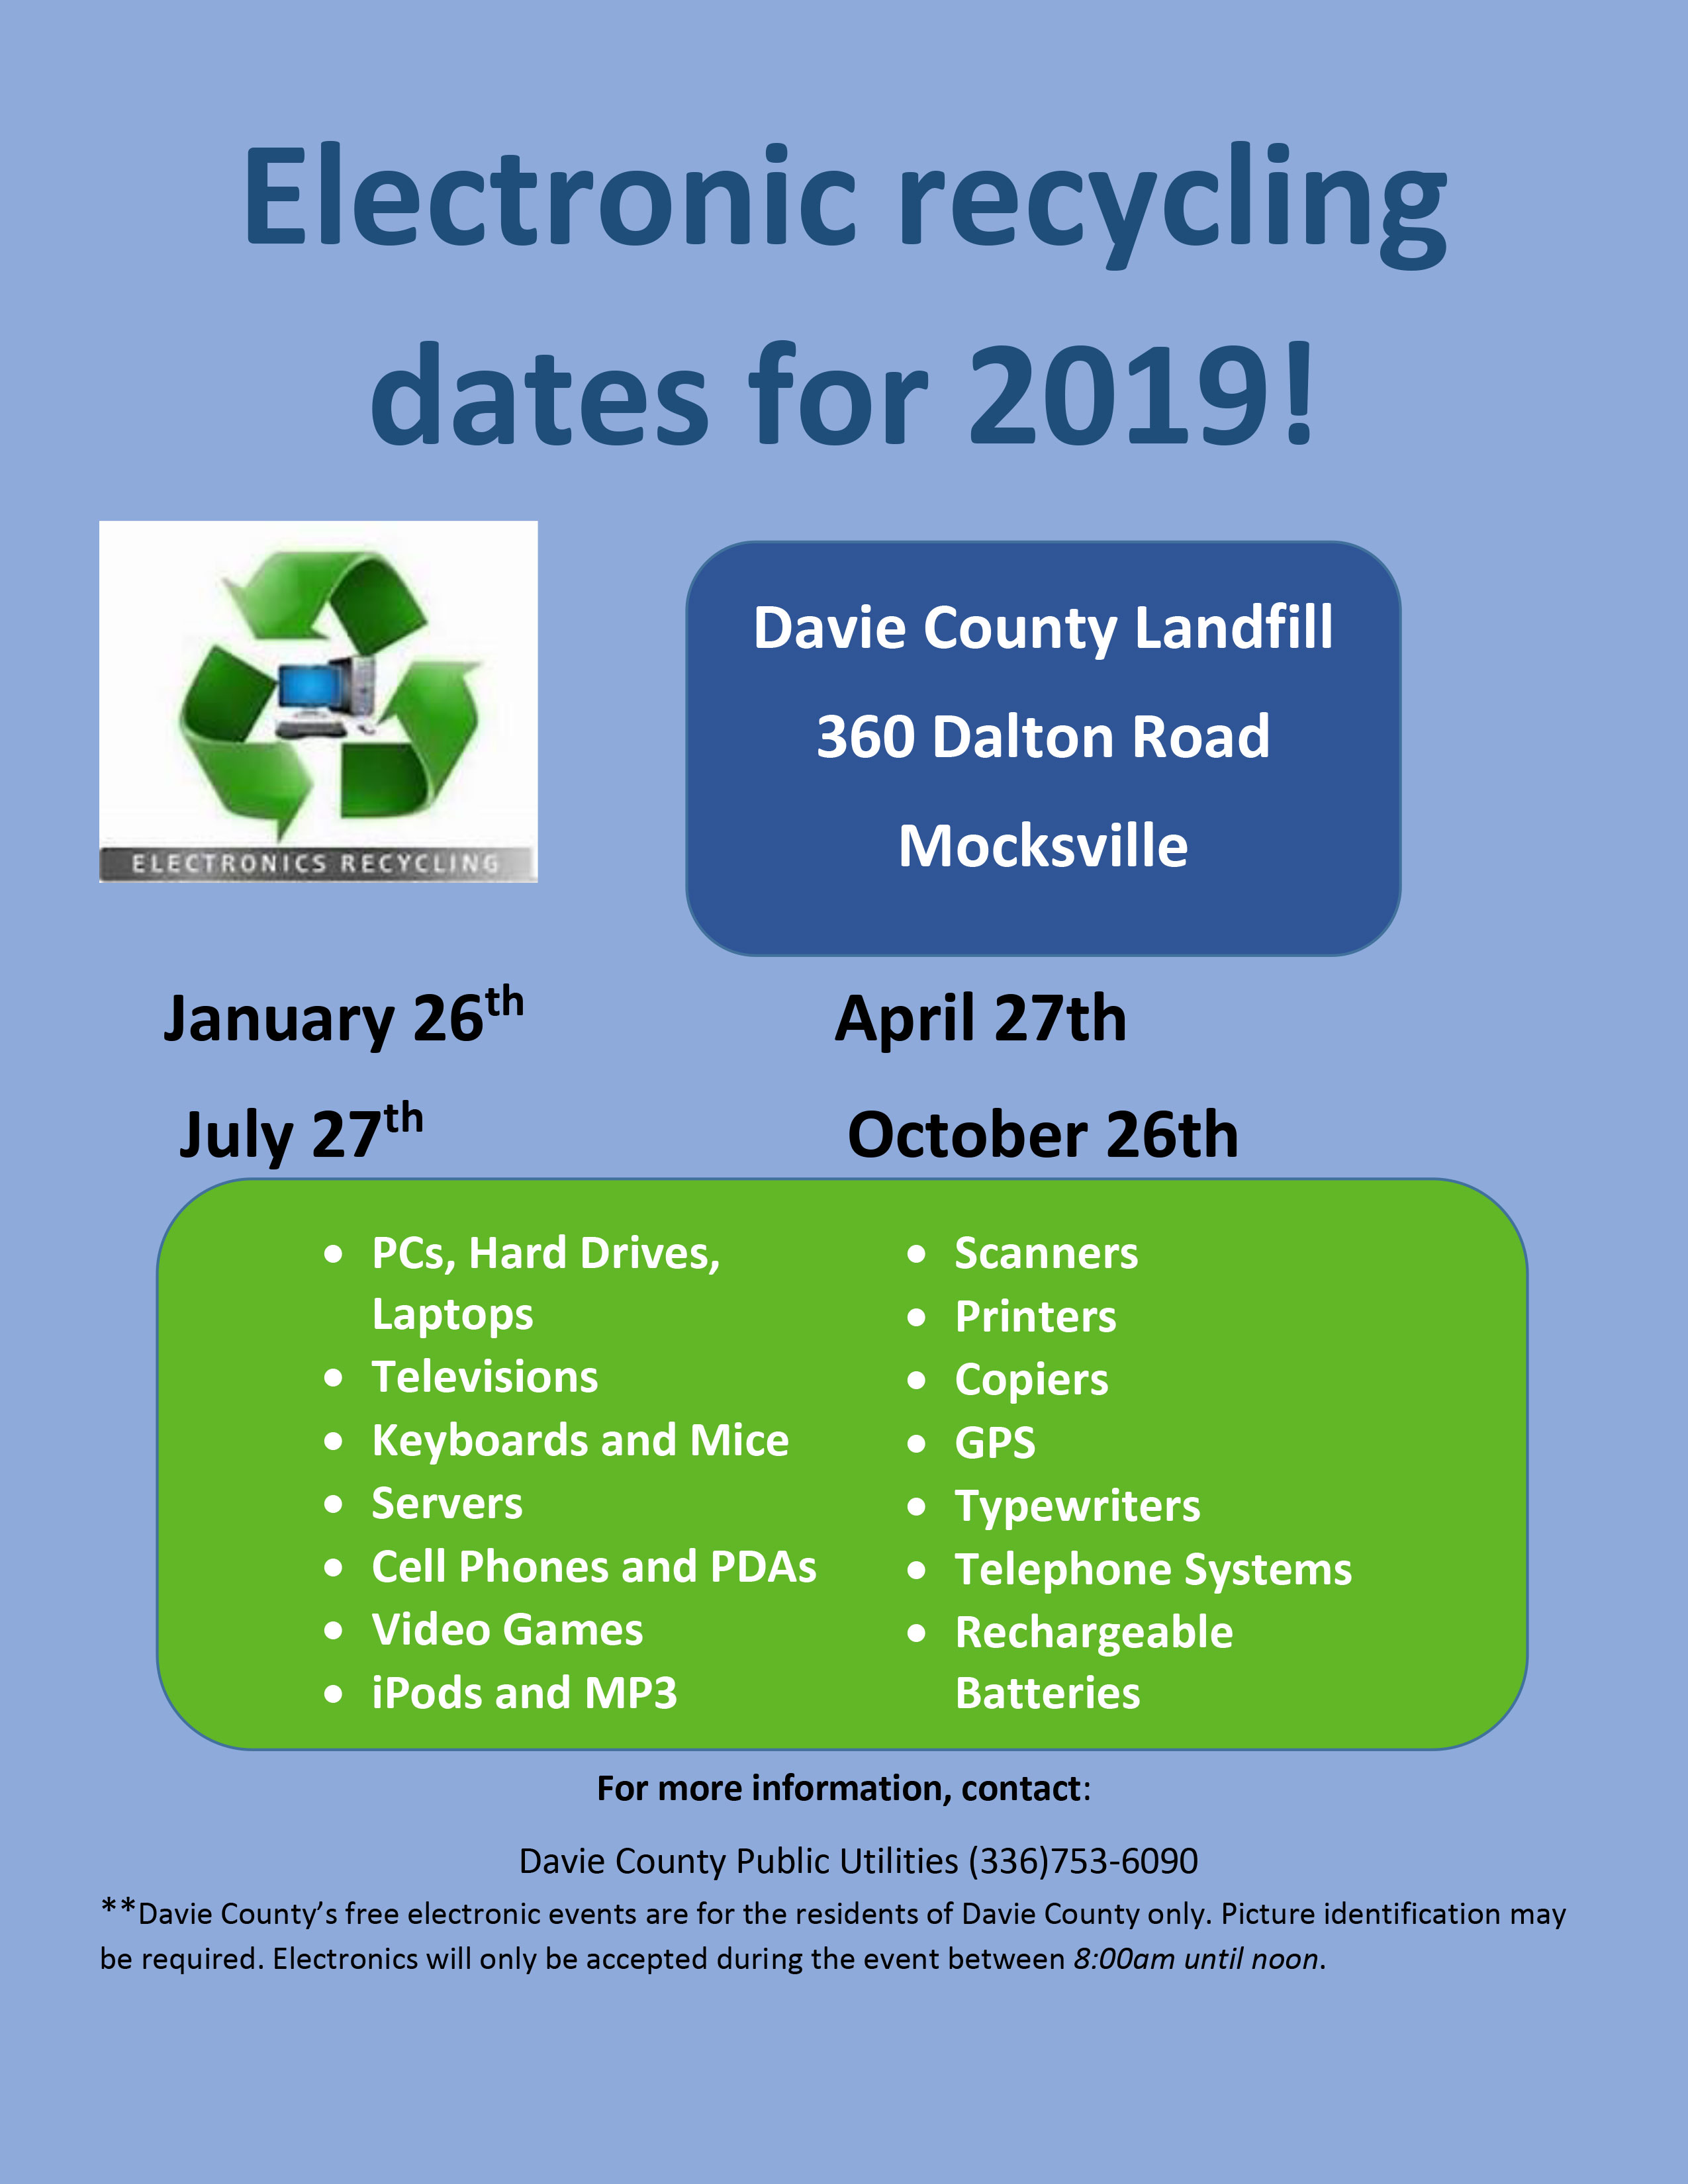 Electronic recycling dates for 2019